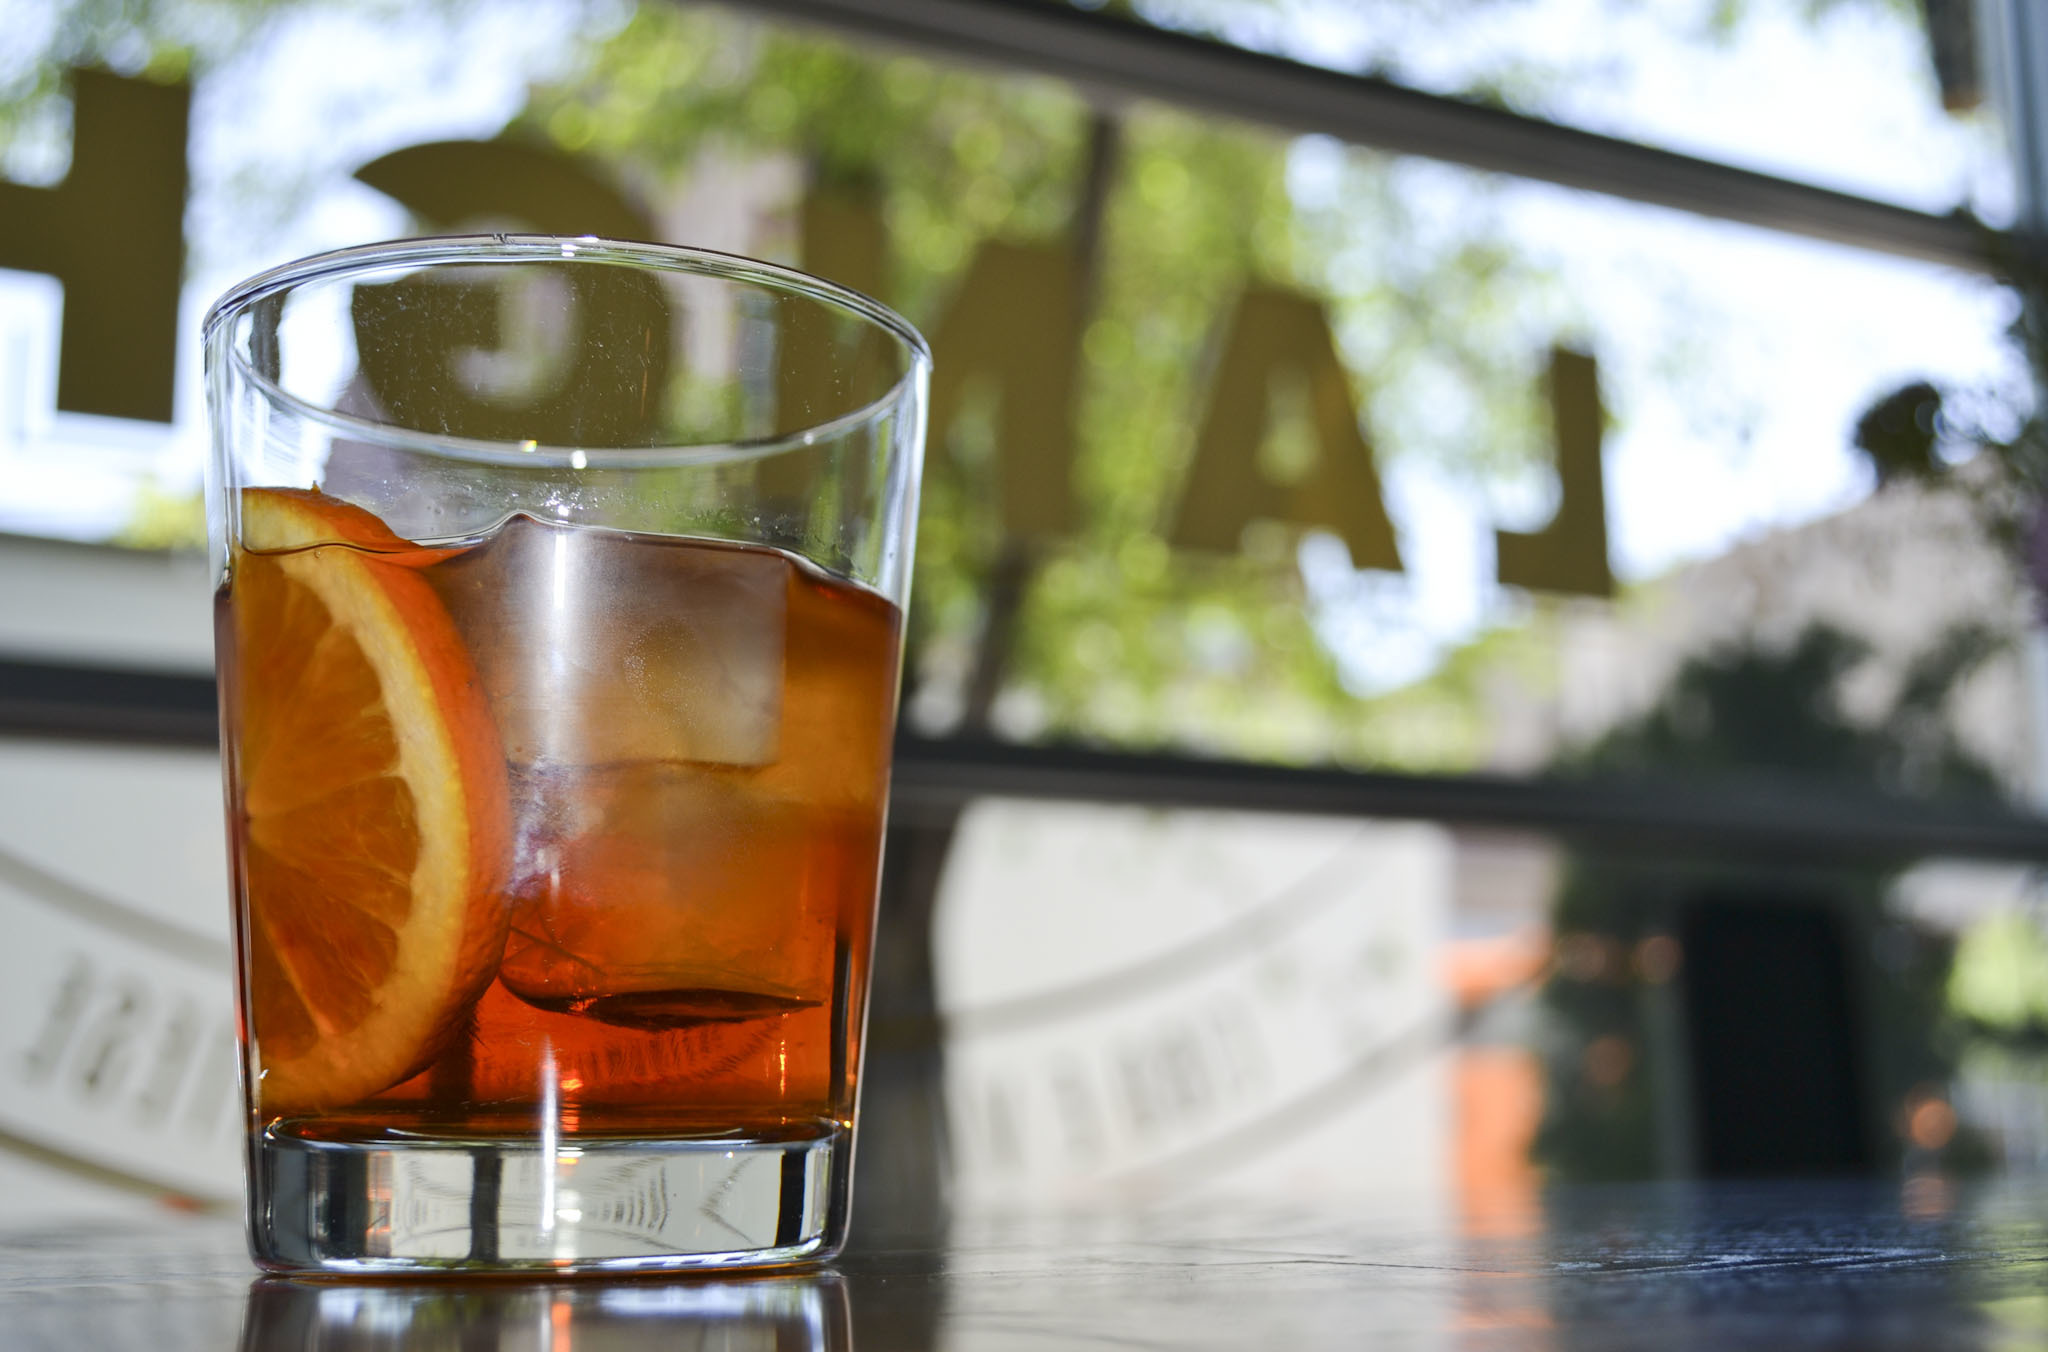 Negroni Classico at Osteria Langhe